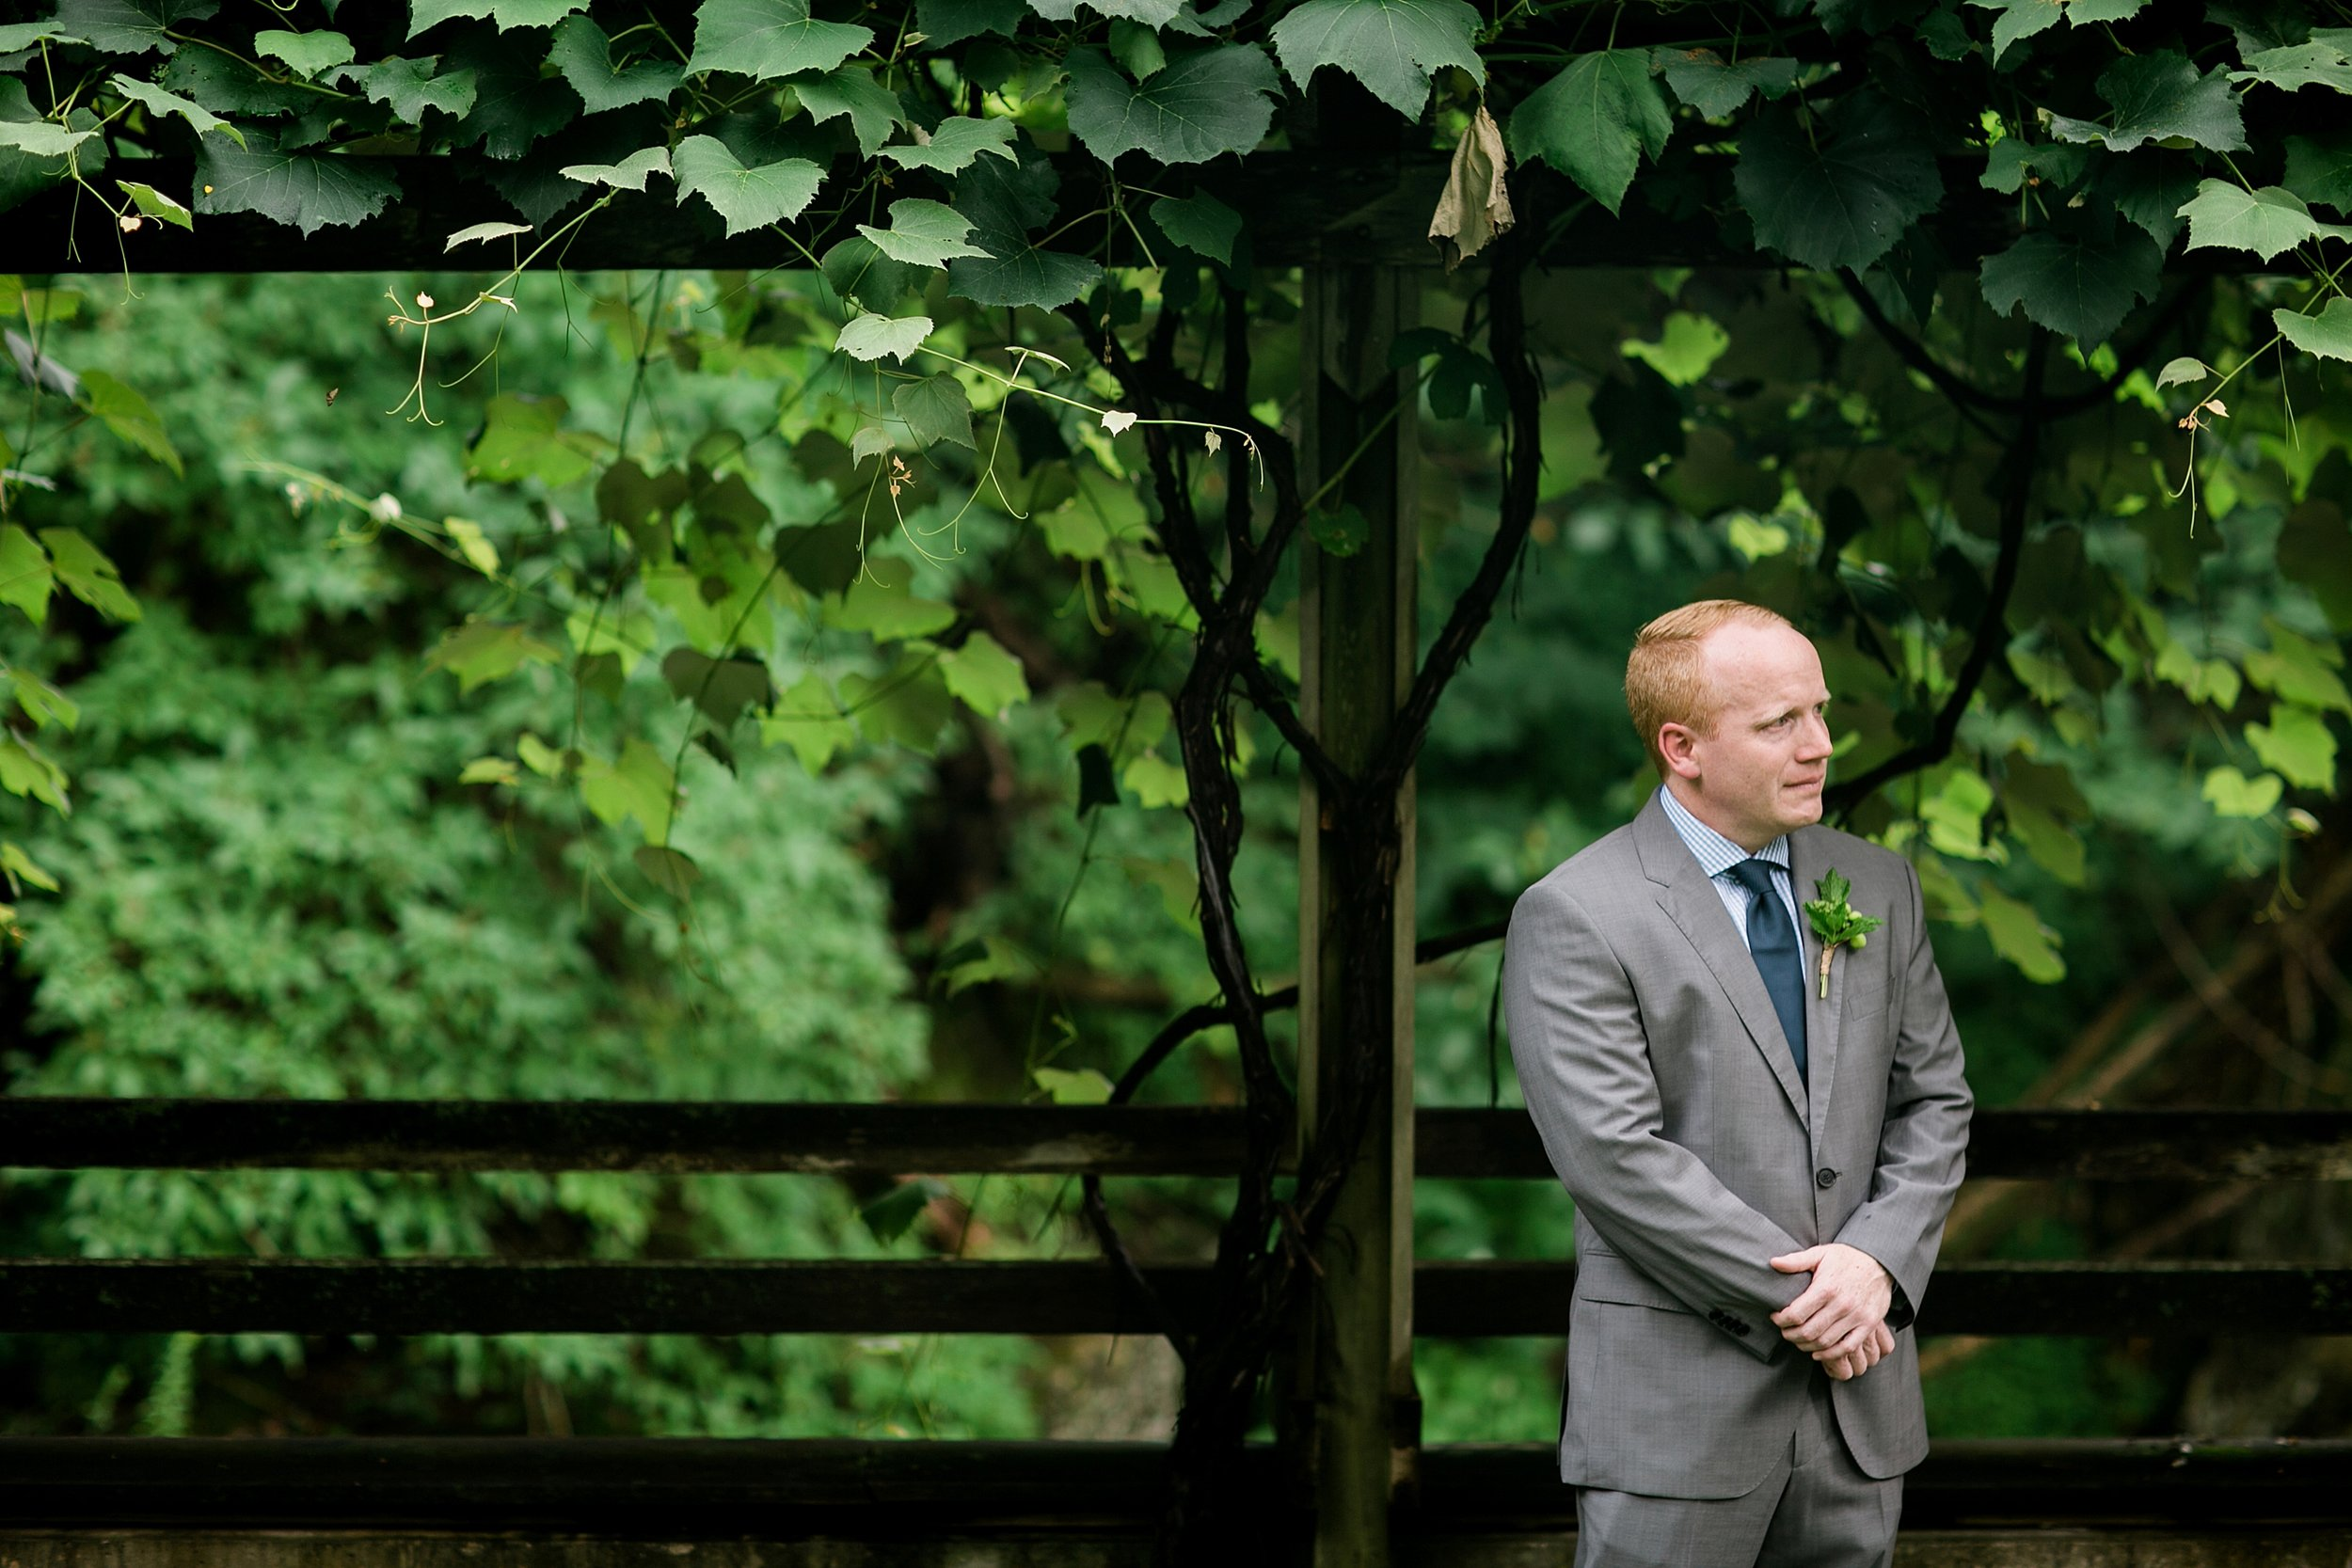 013-los-angeles-wedding-photography-todd-danforth-vermont.jpg